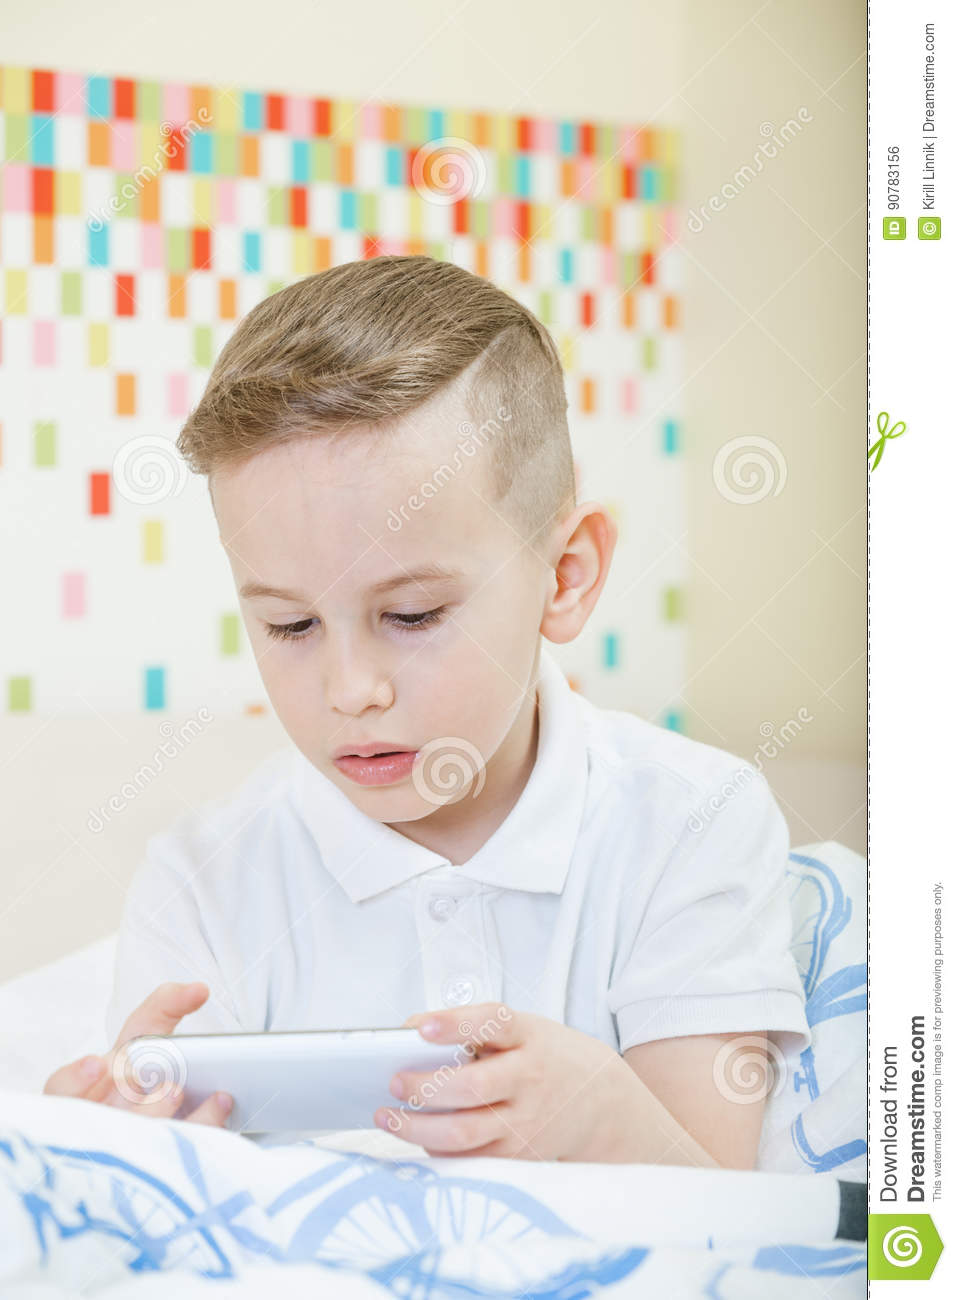 Download Kid with smartphone stock photo. Image of little, childhood - 90783156